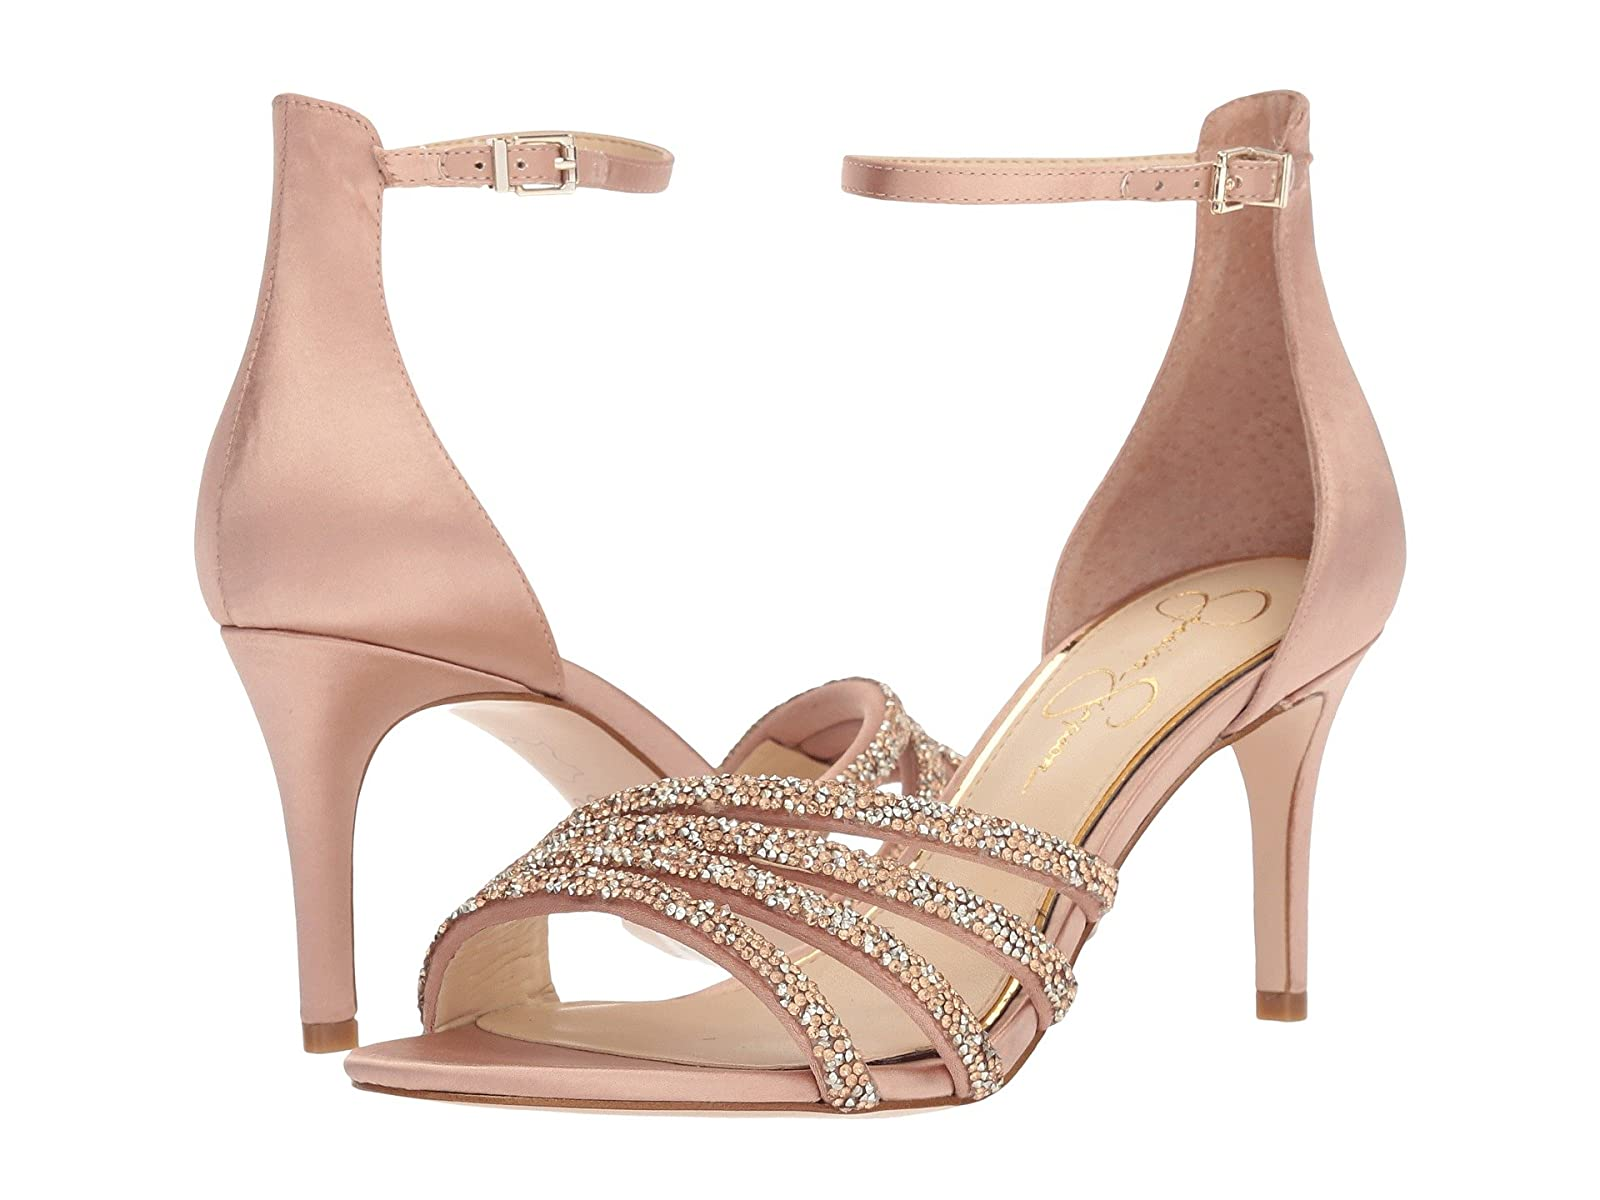 Jessica Simpson PavenyCheap and distinctive eye-catching shoes